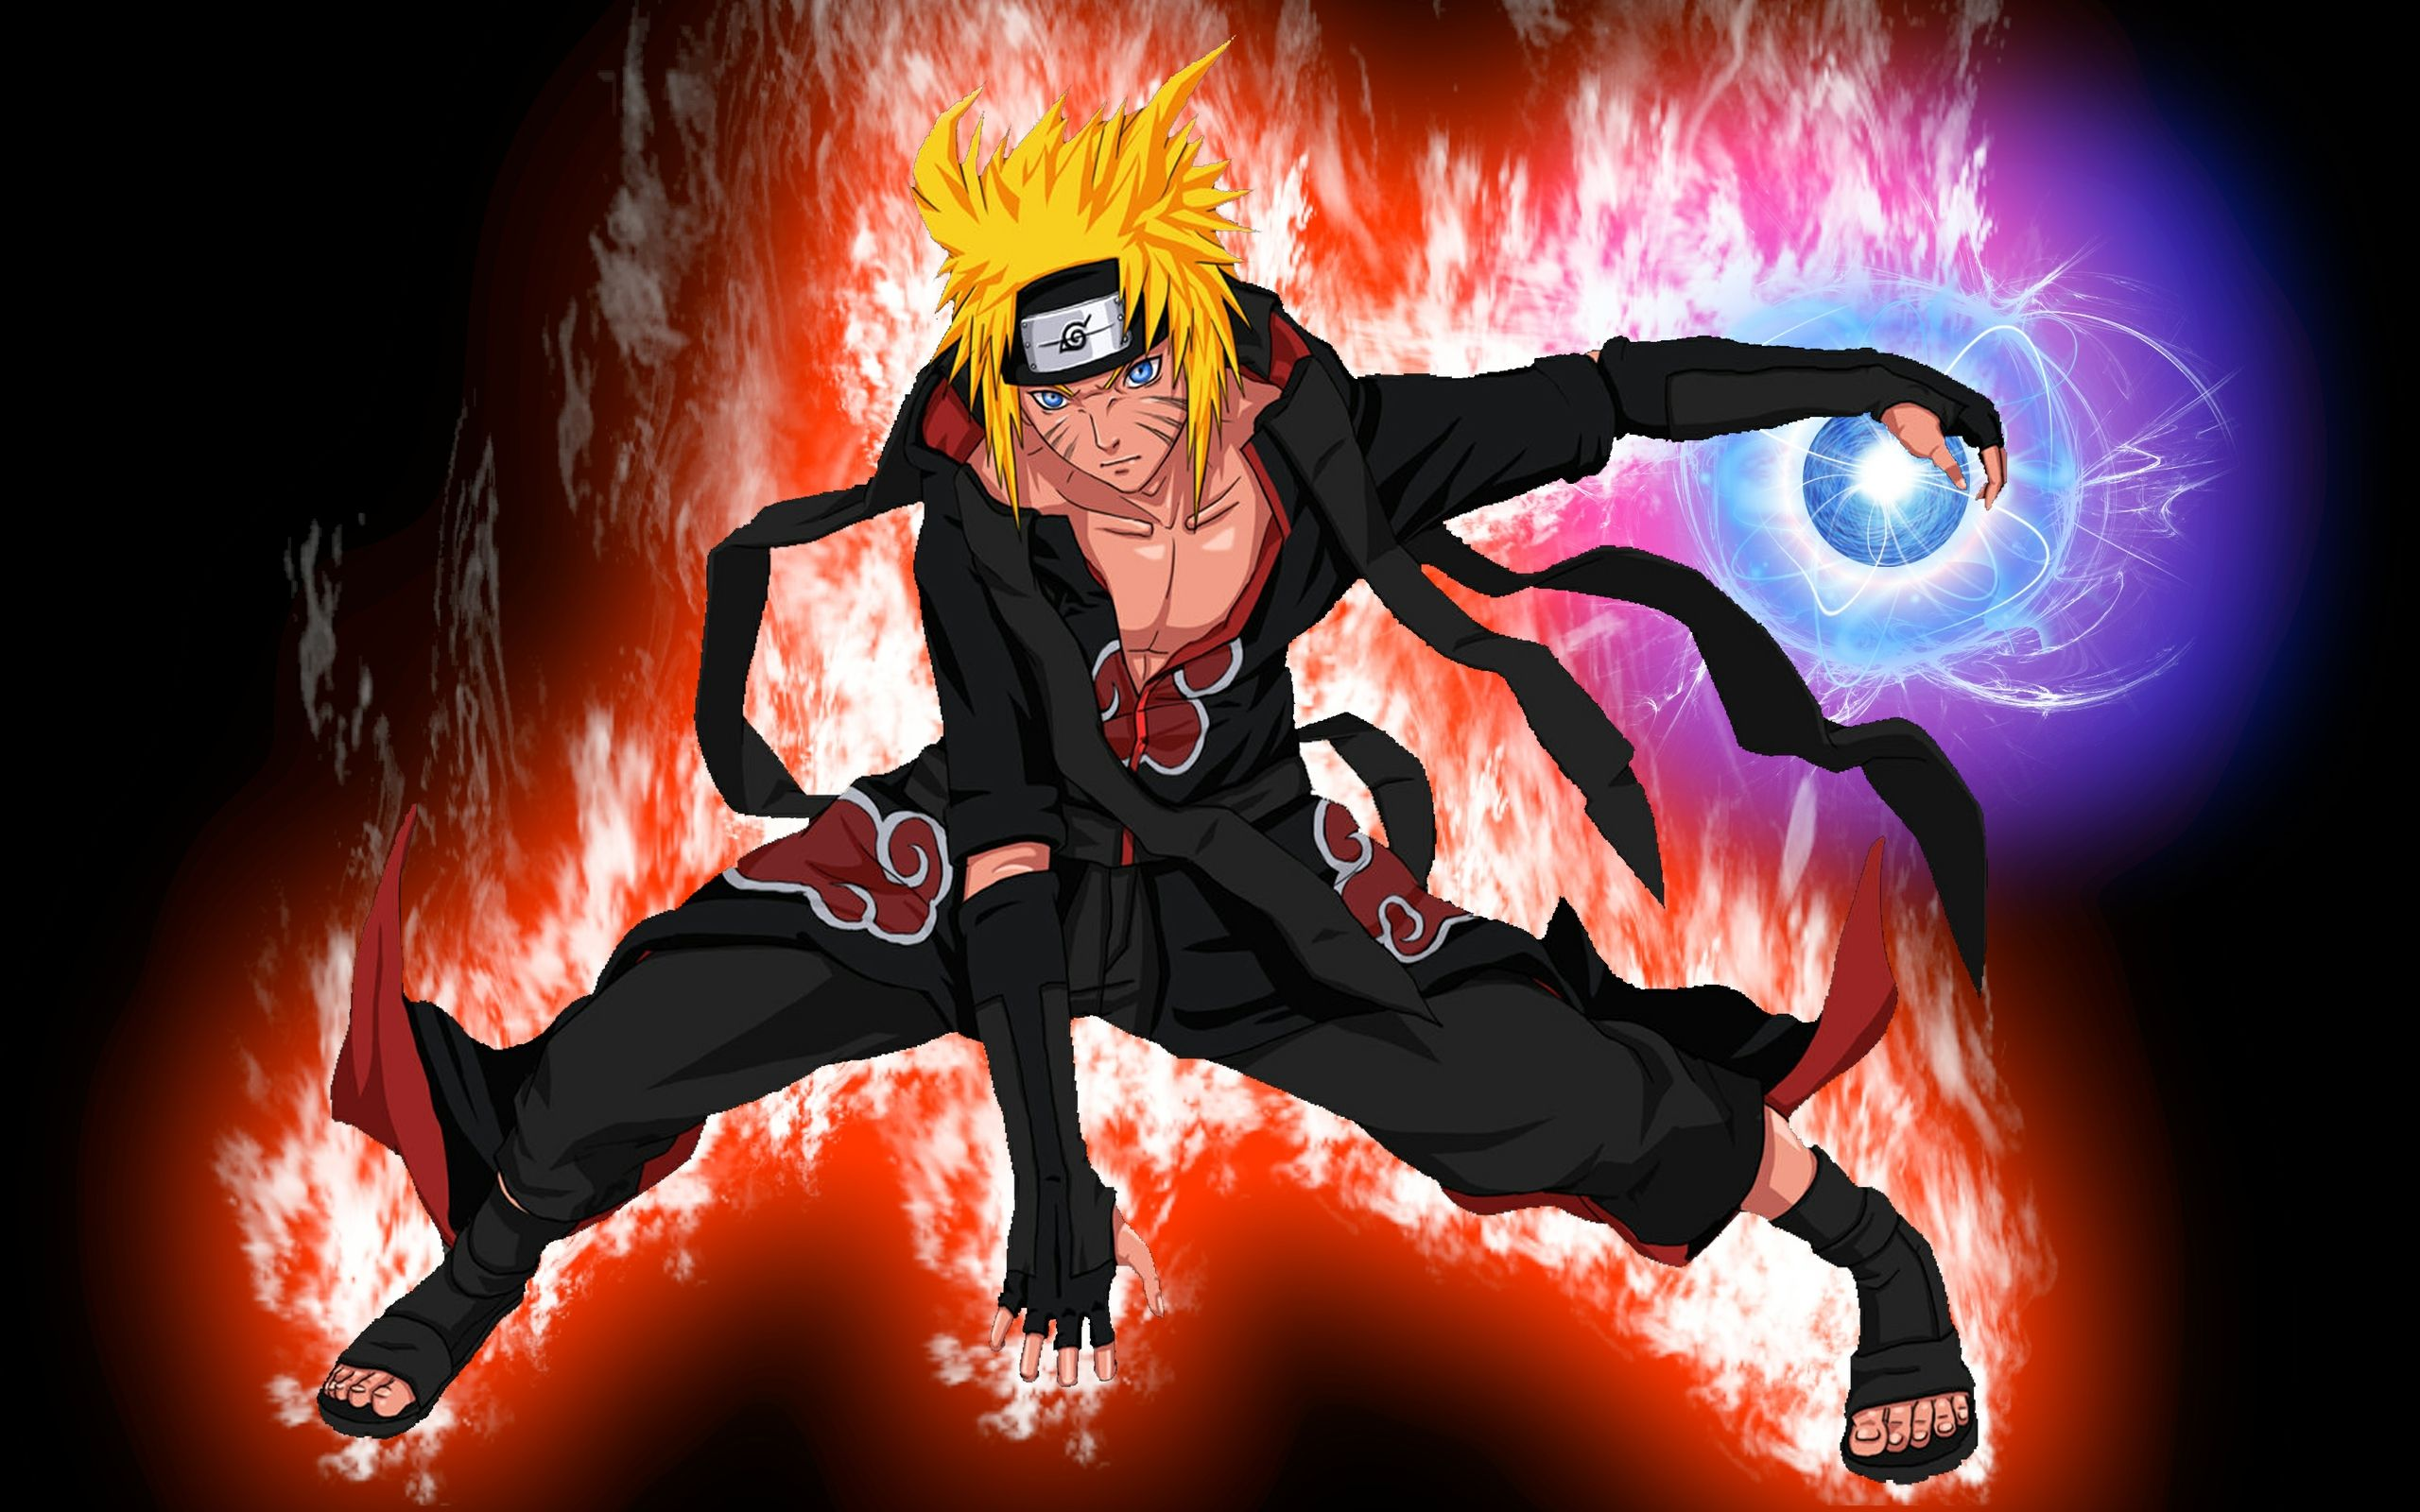 Naruto Wallpapers High Quality Sdeerwallpaper Wallpaper Naruto Shippuden Naruto Wallpaper Naruto Pictures